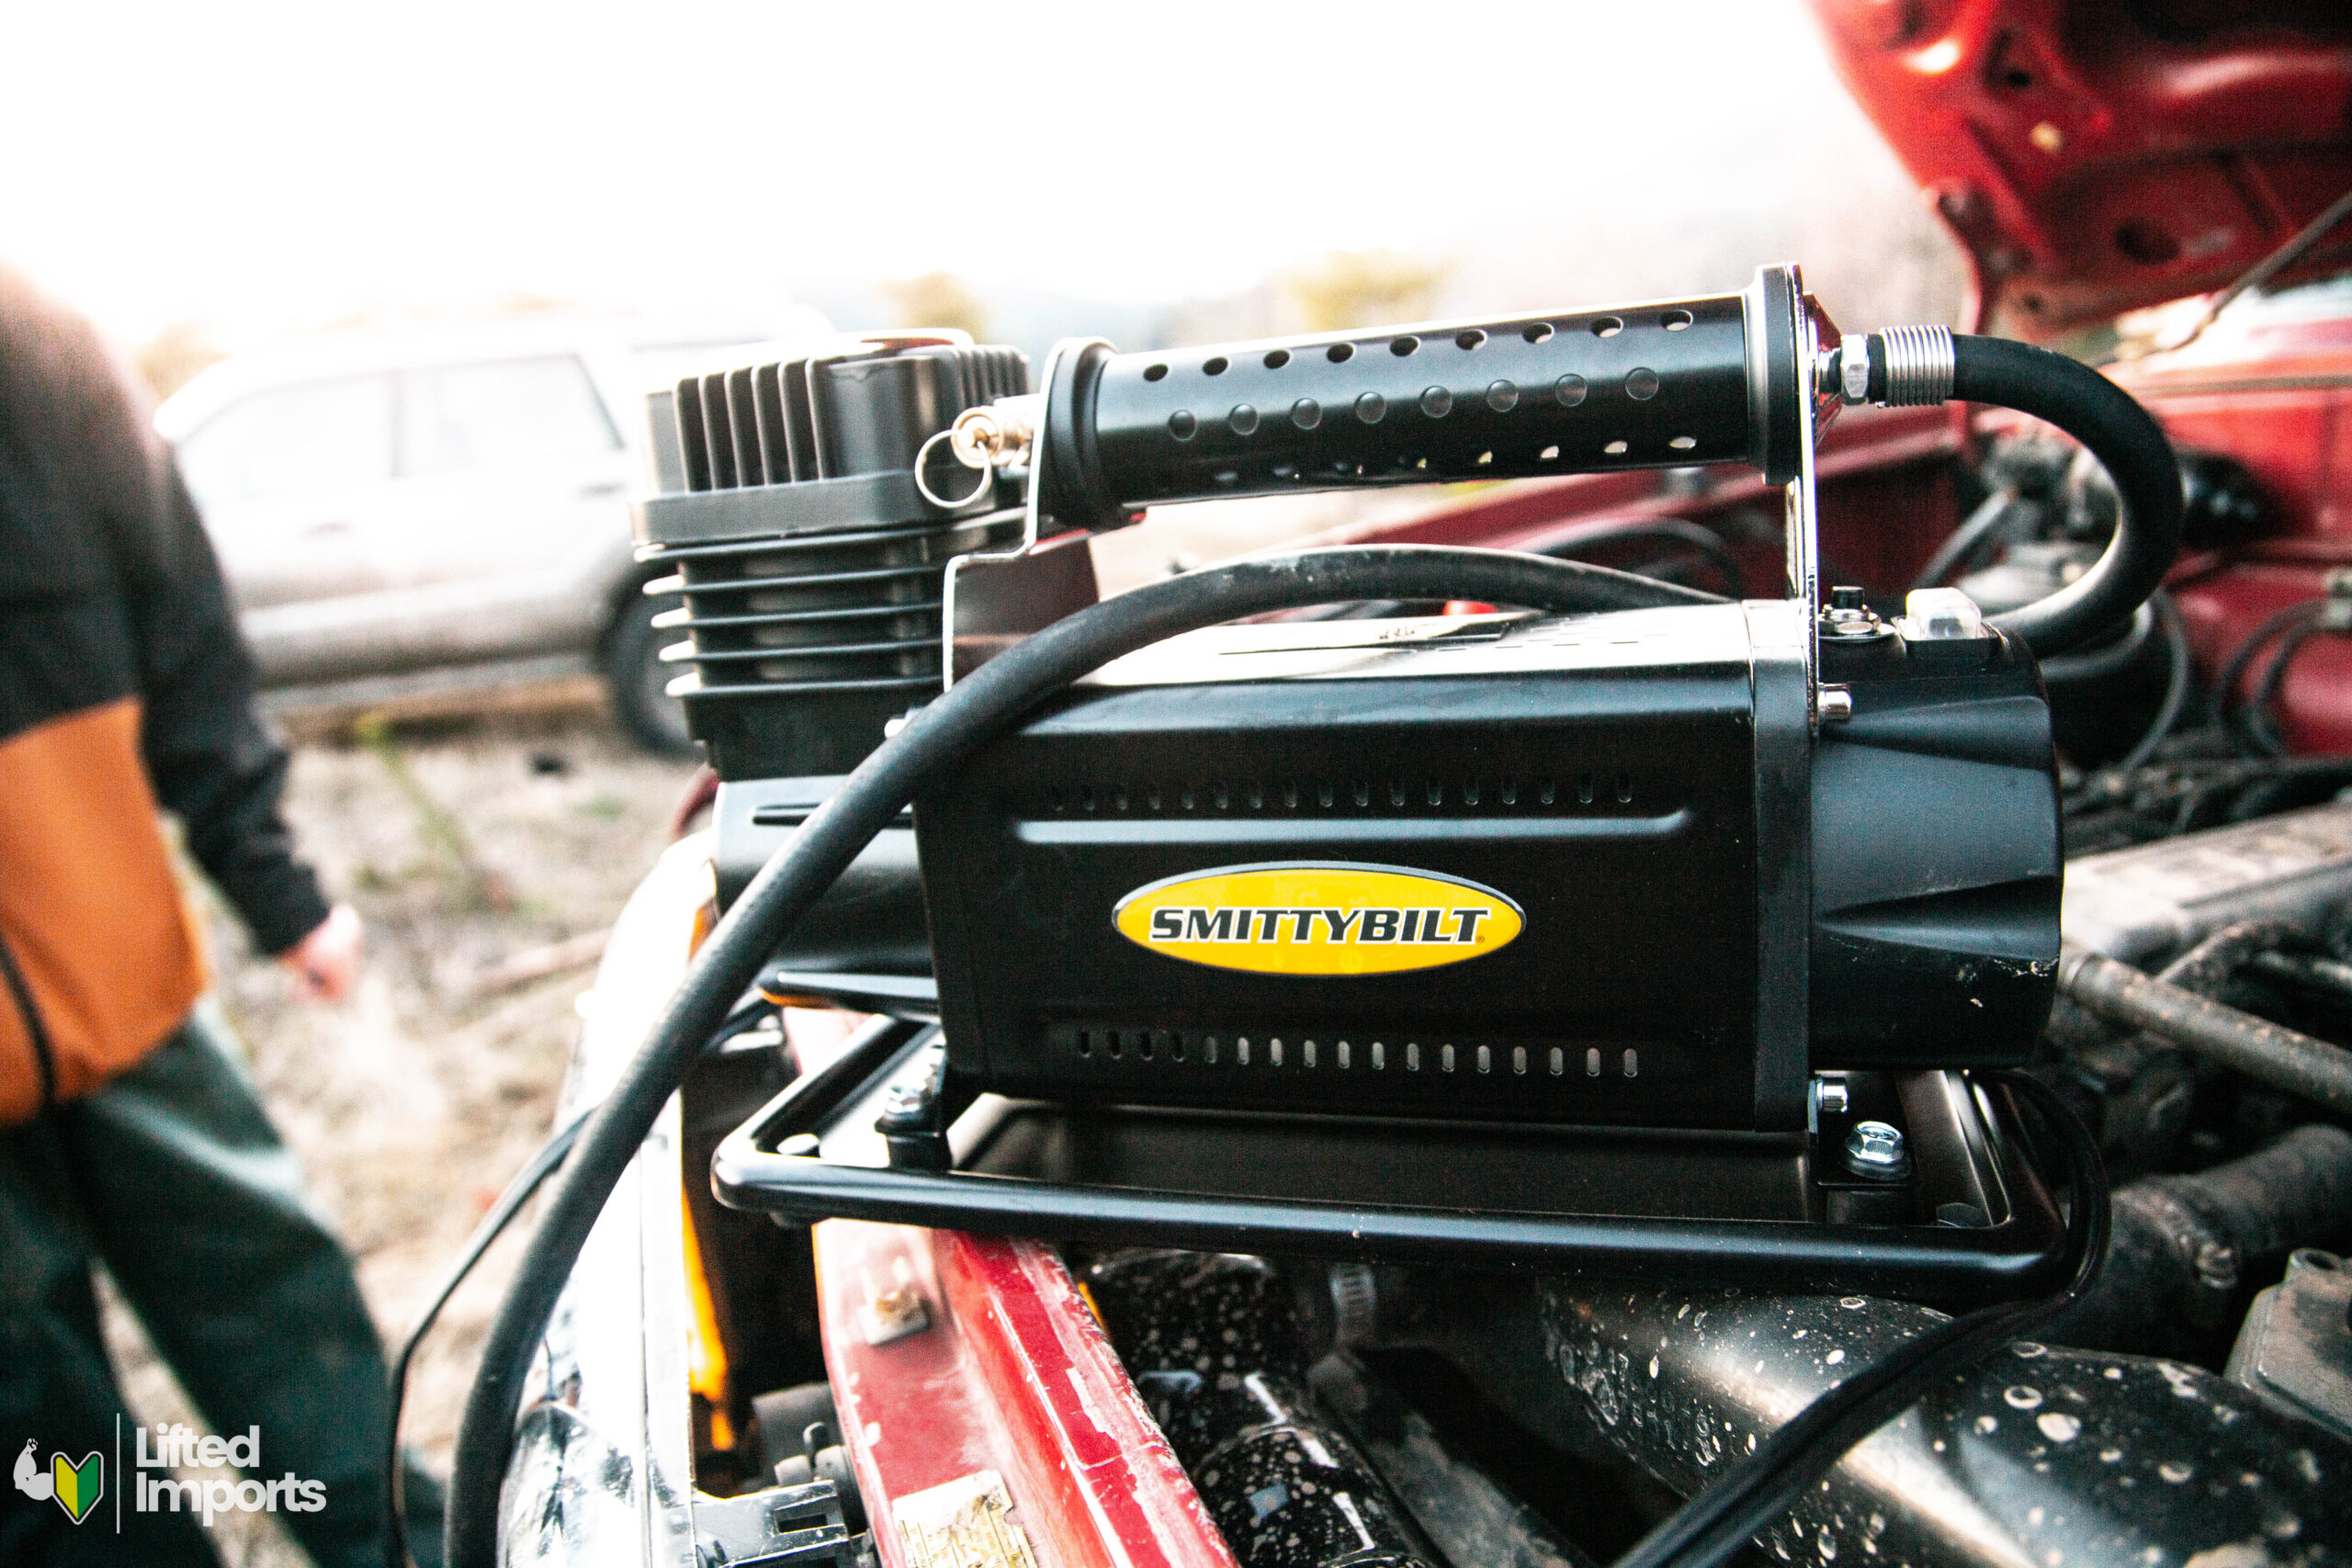 smittybilt portable air compressor for off road